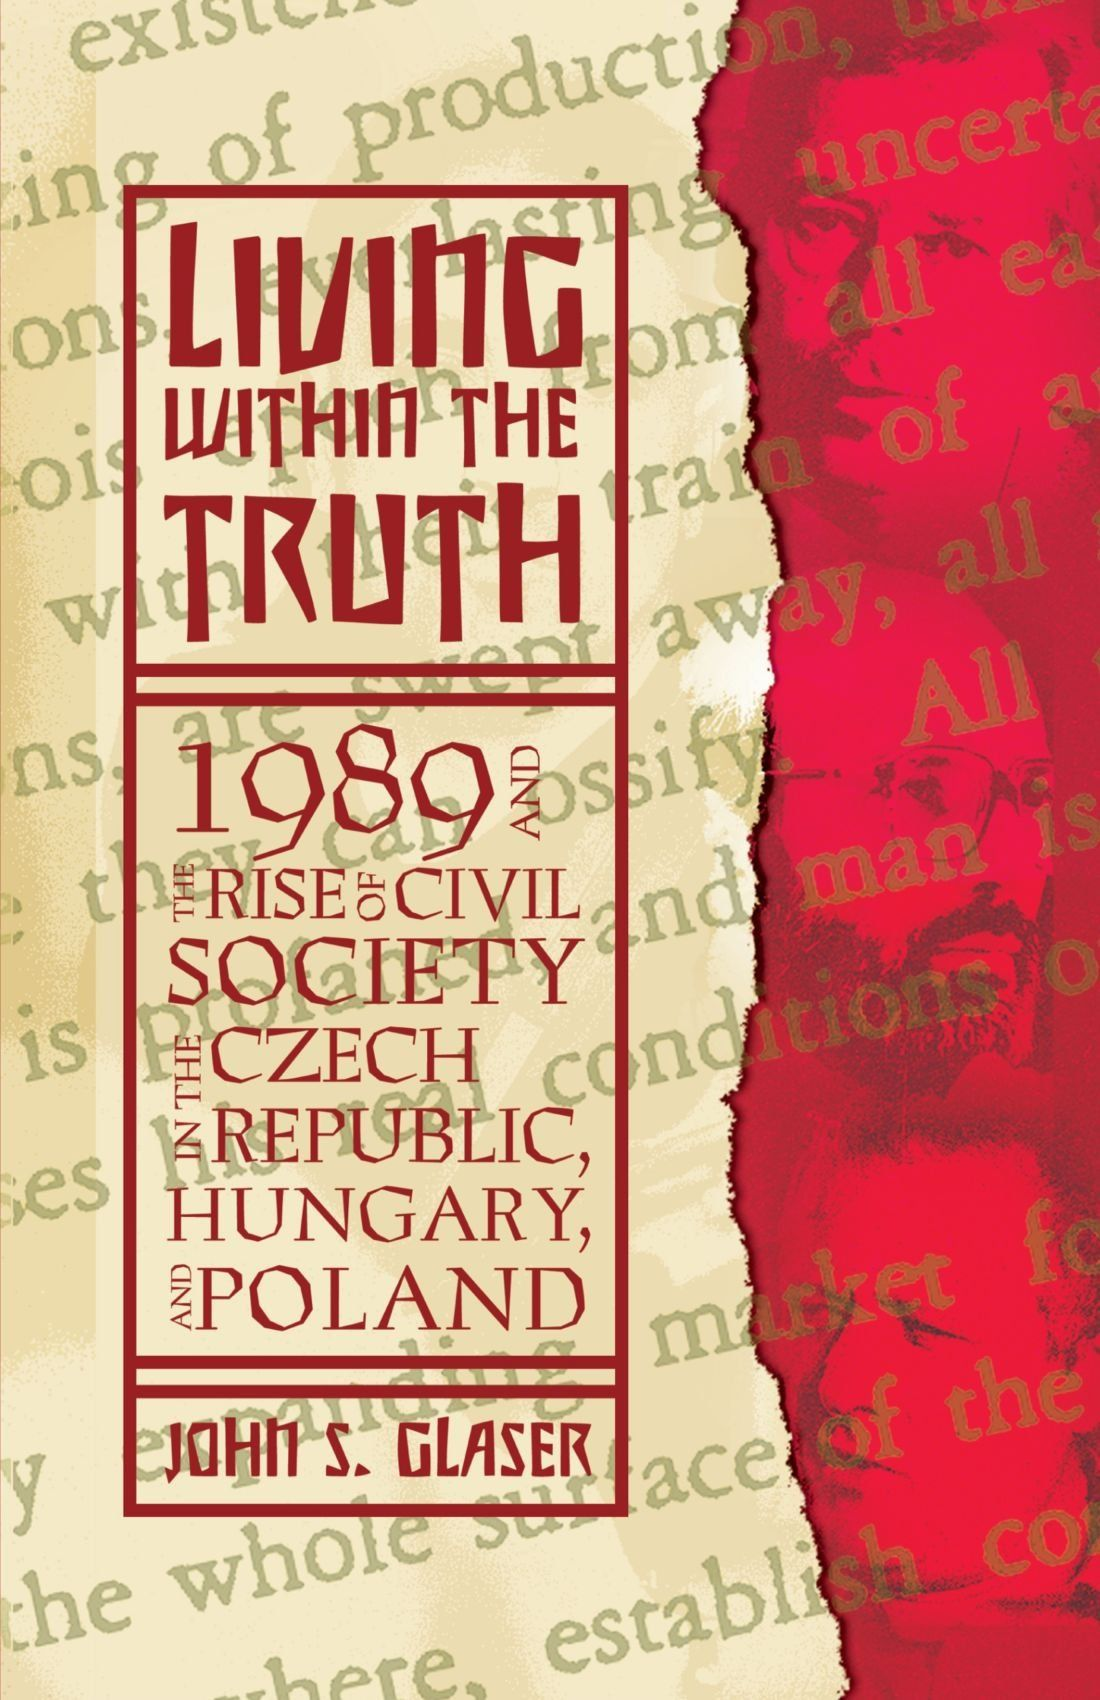 P22 Preissig fonts on the cover of Living Within the Truth: 1989 and